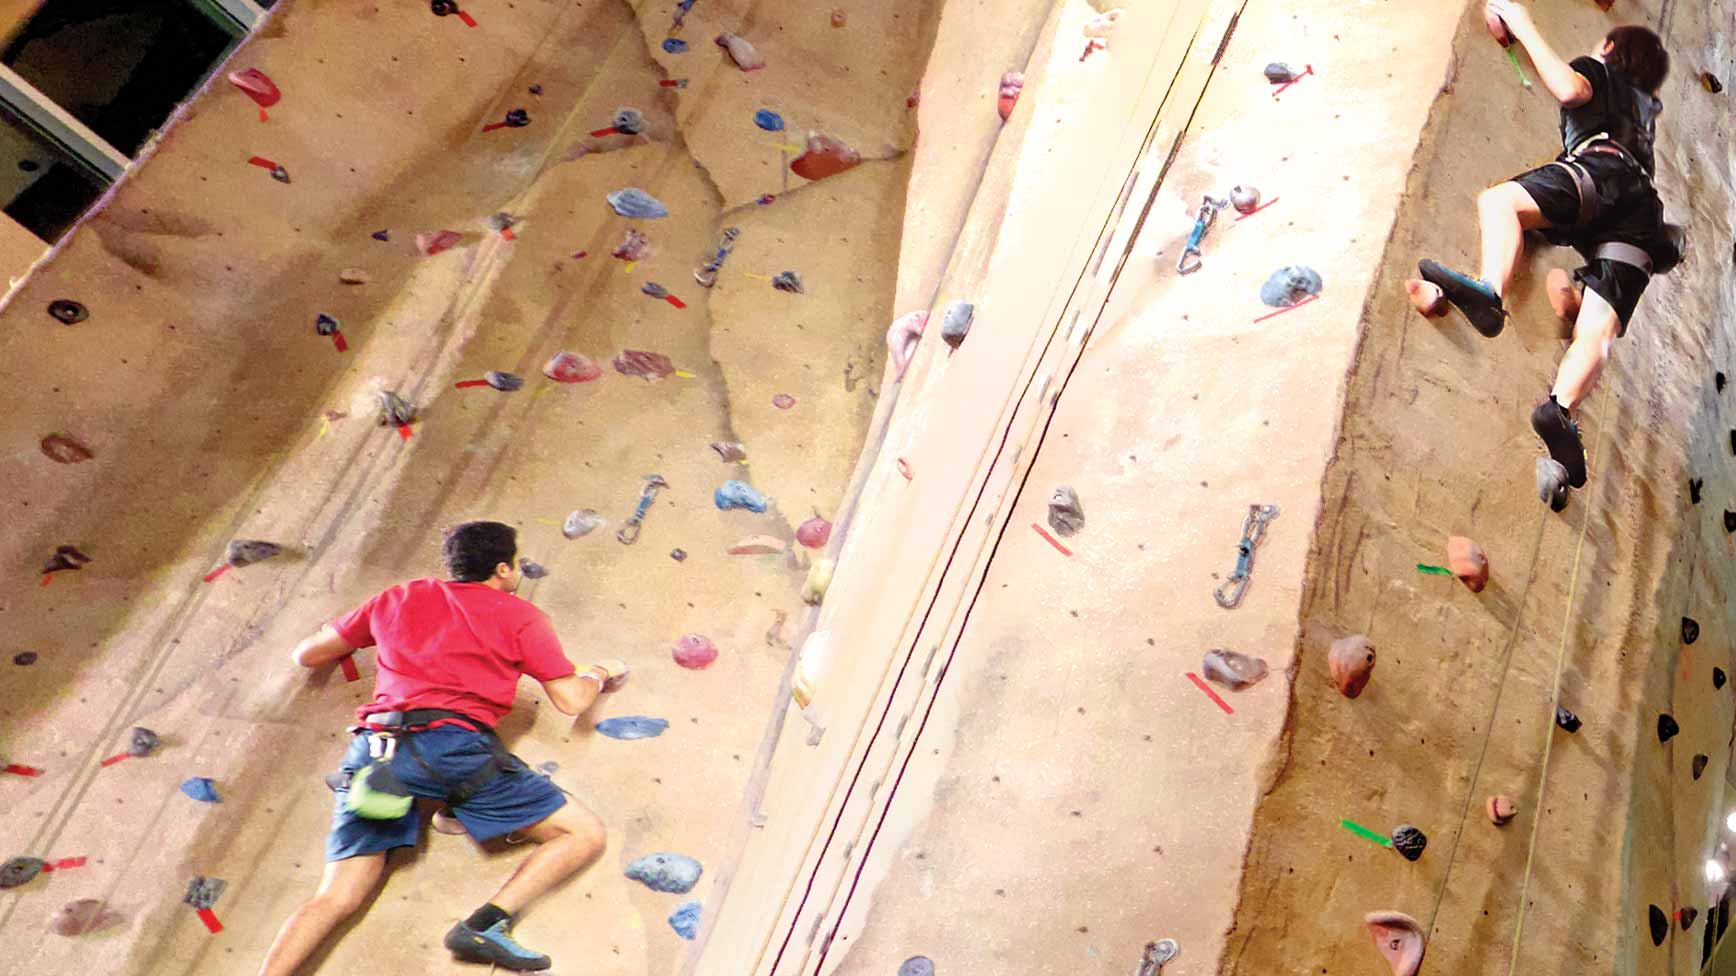 Two people rock climbing on a rockwall at Life Time.